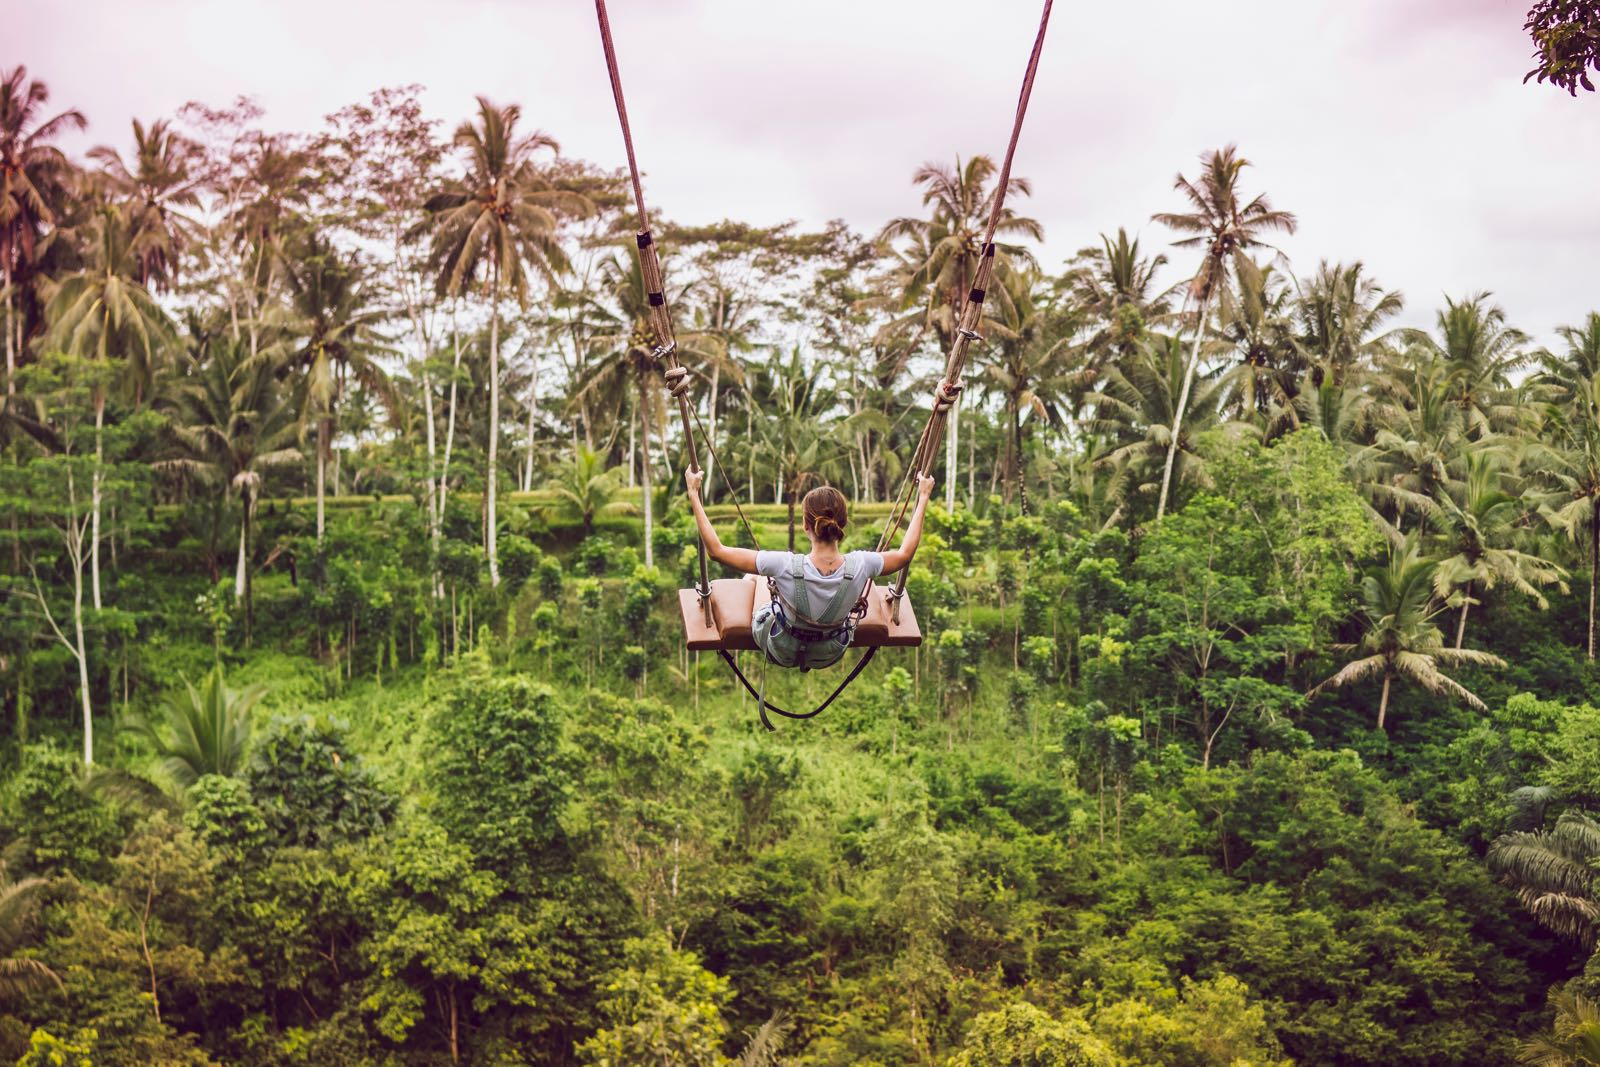 Bali-Swing-over-jungle-AdobeStock_182425921-2